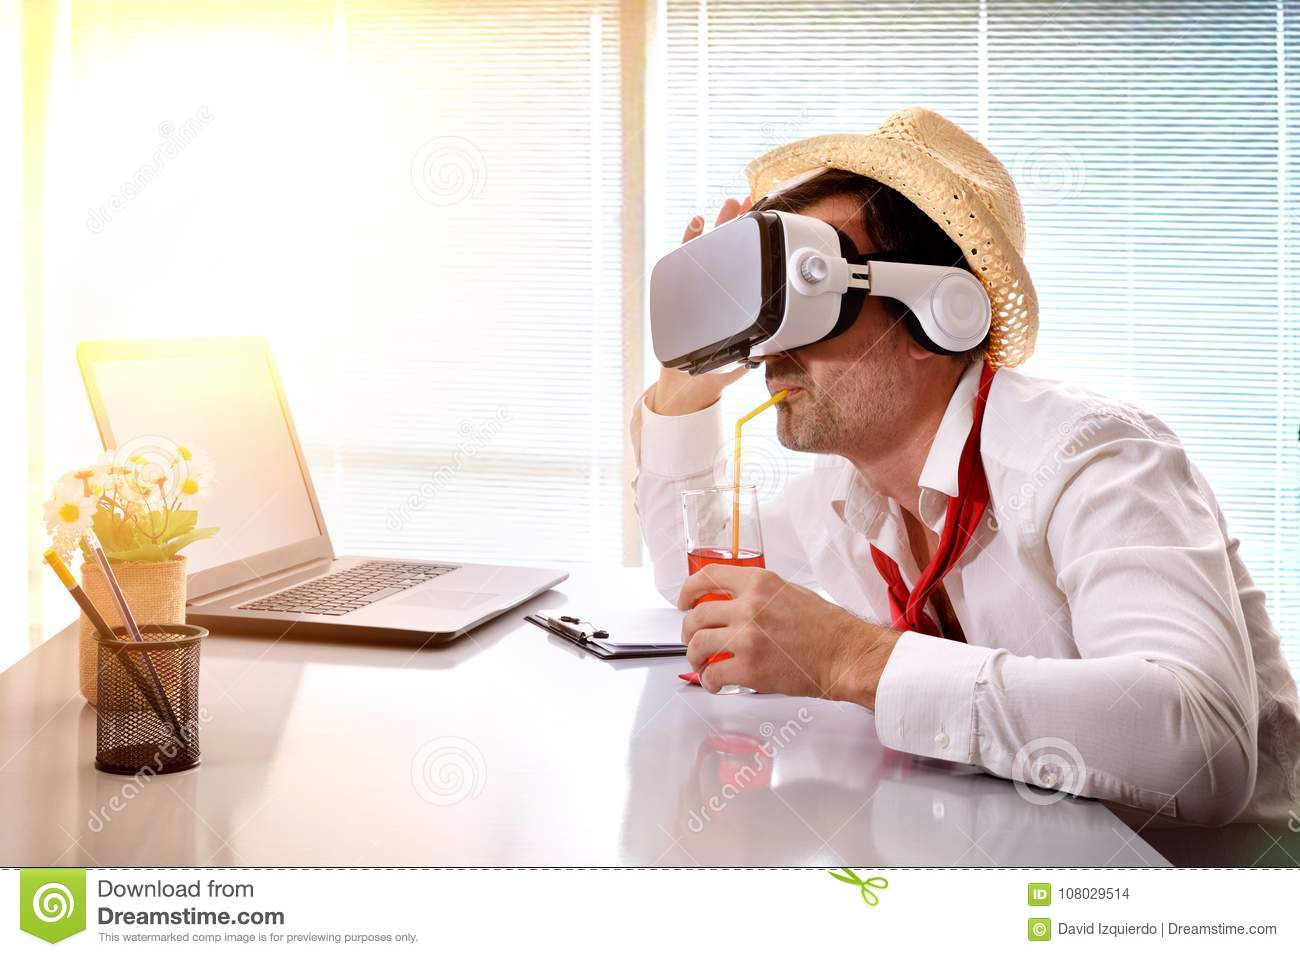 Man at work imagining his vacation with vr glasses drinking